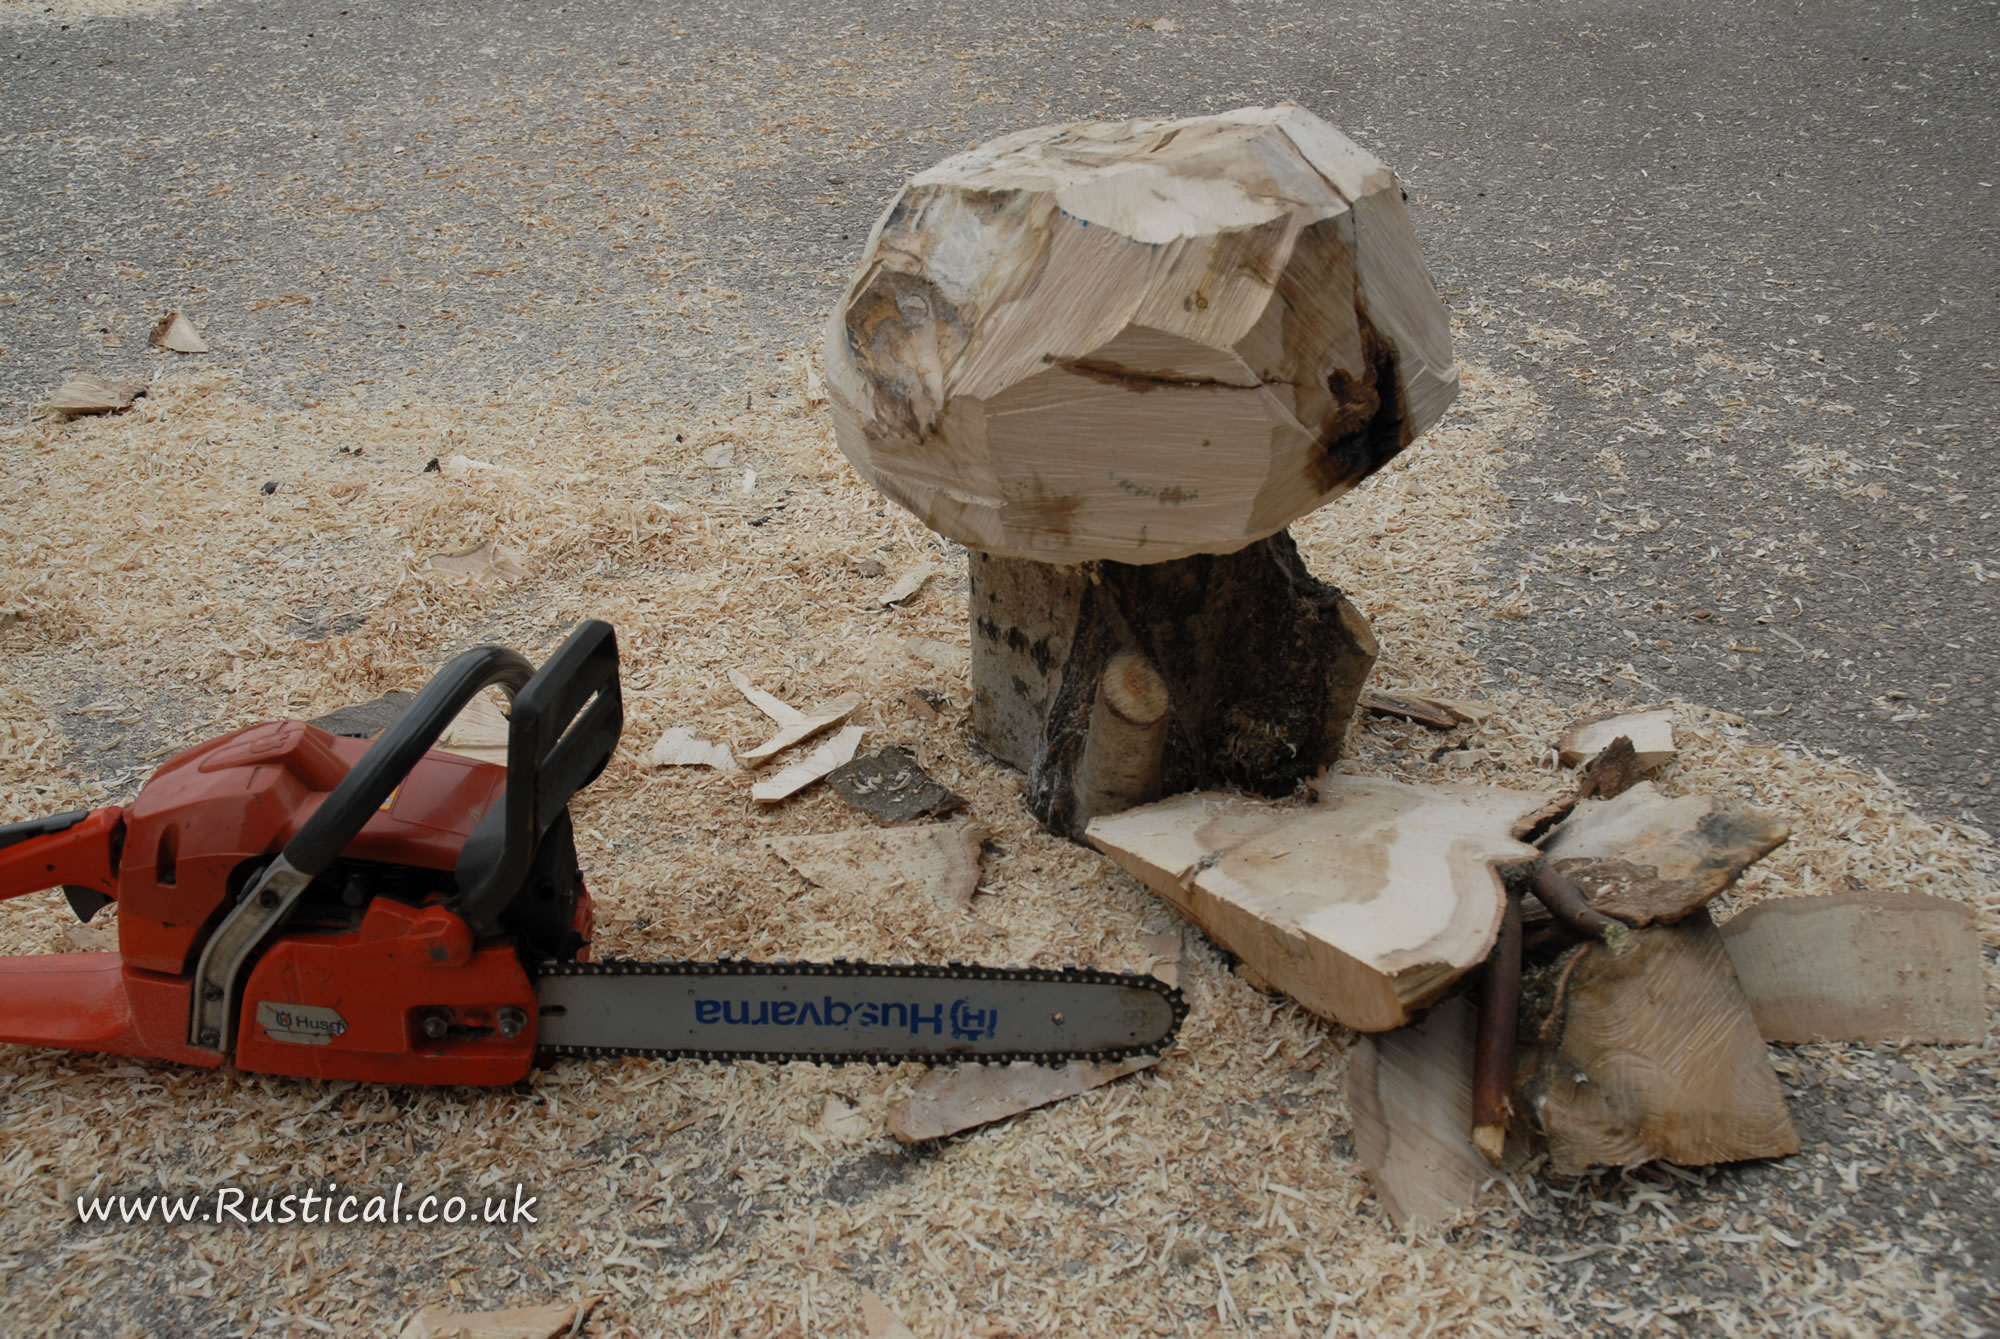 Roughing out the rough shape with a chainsaw